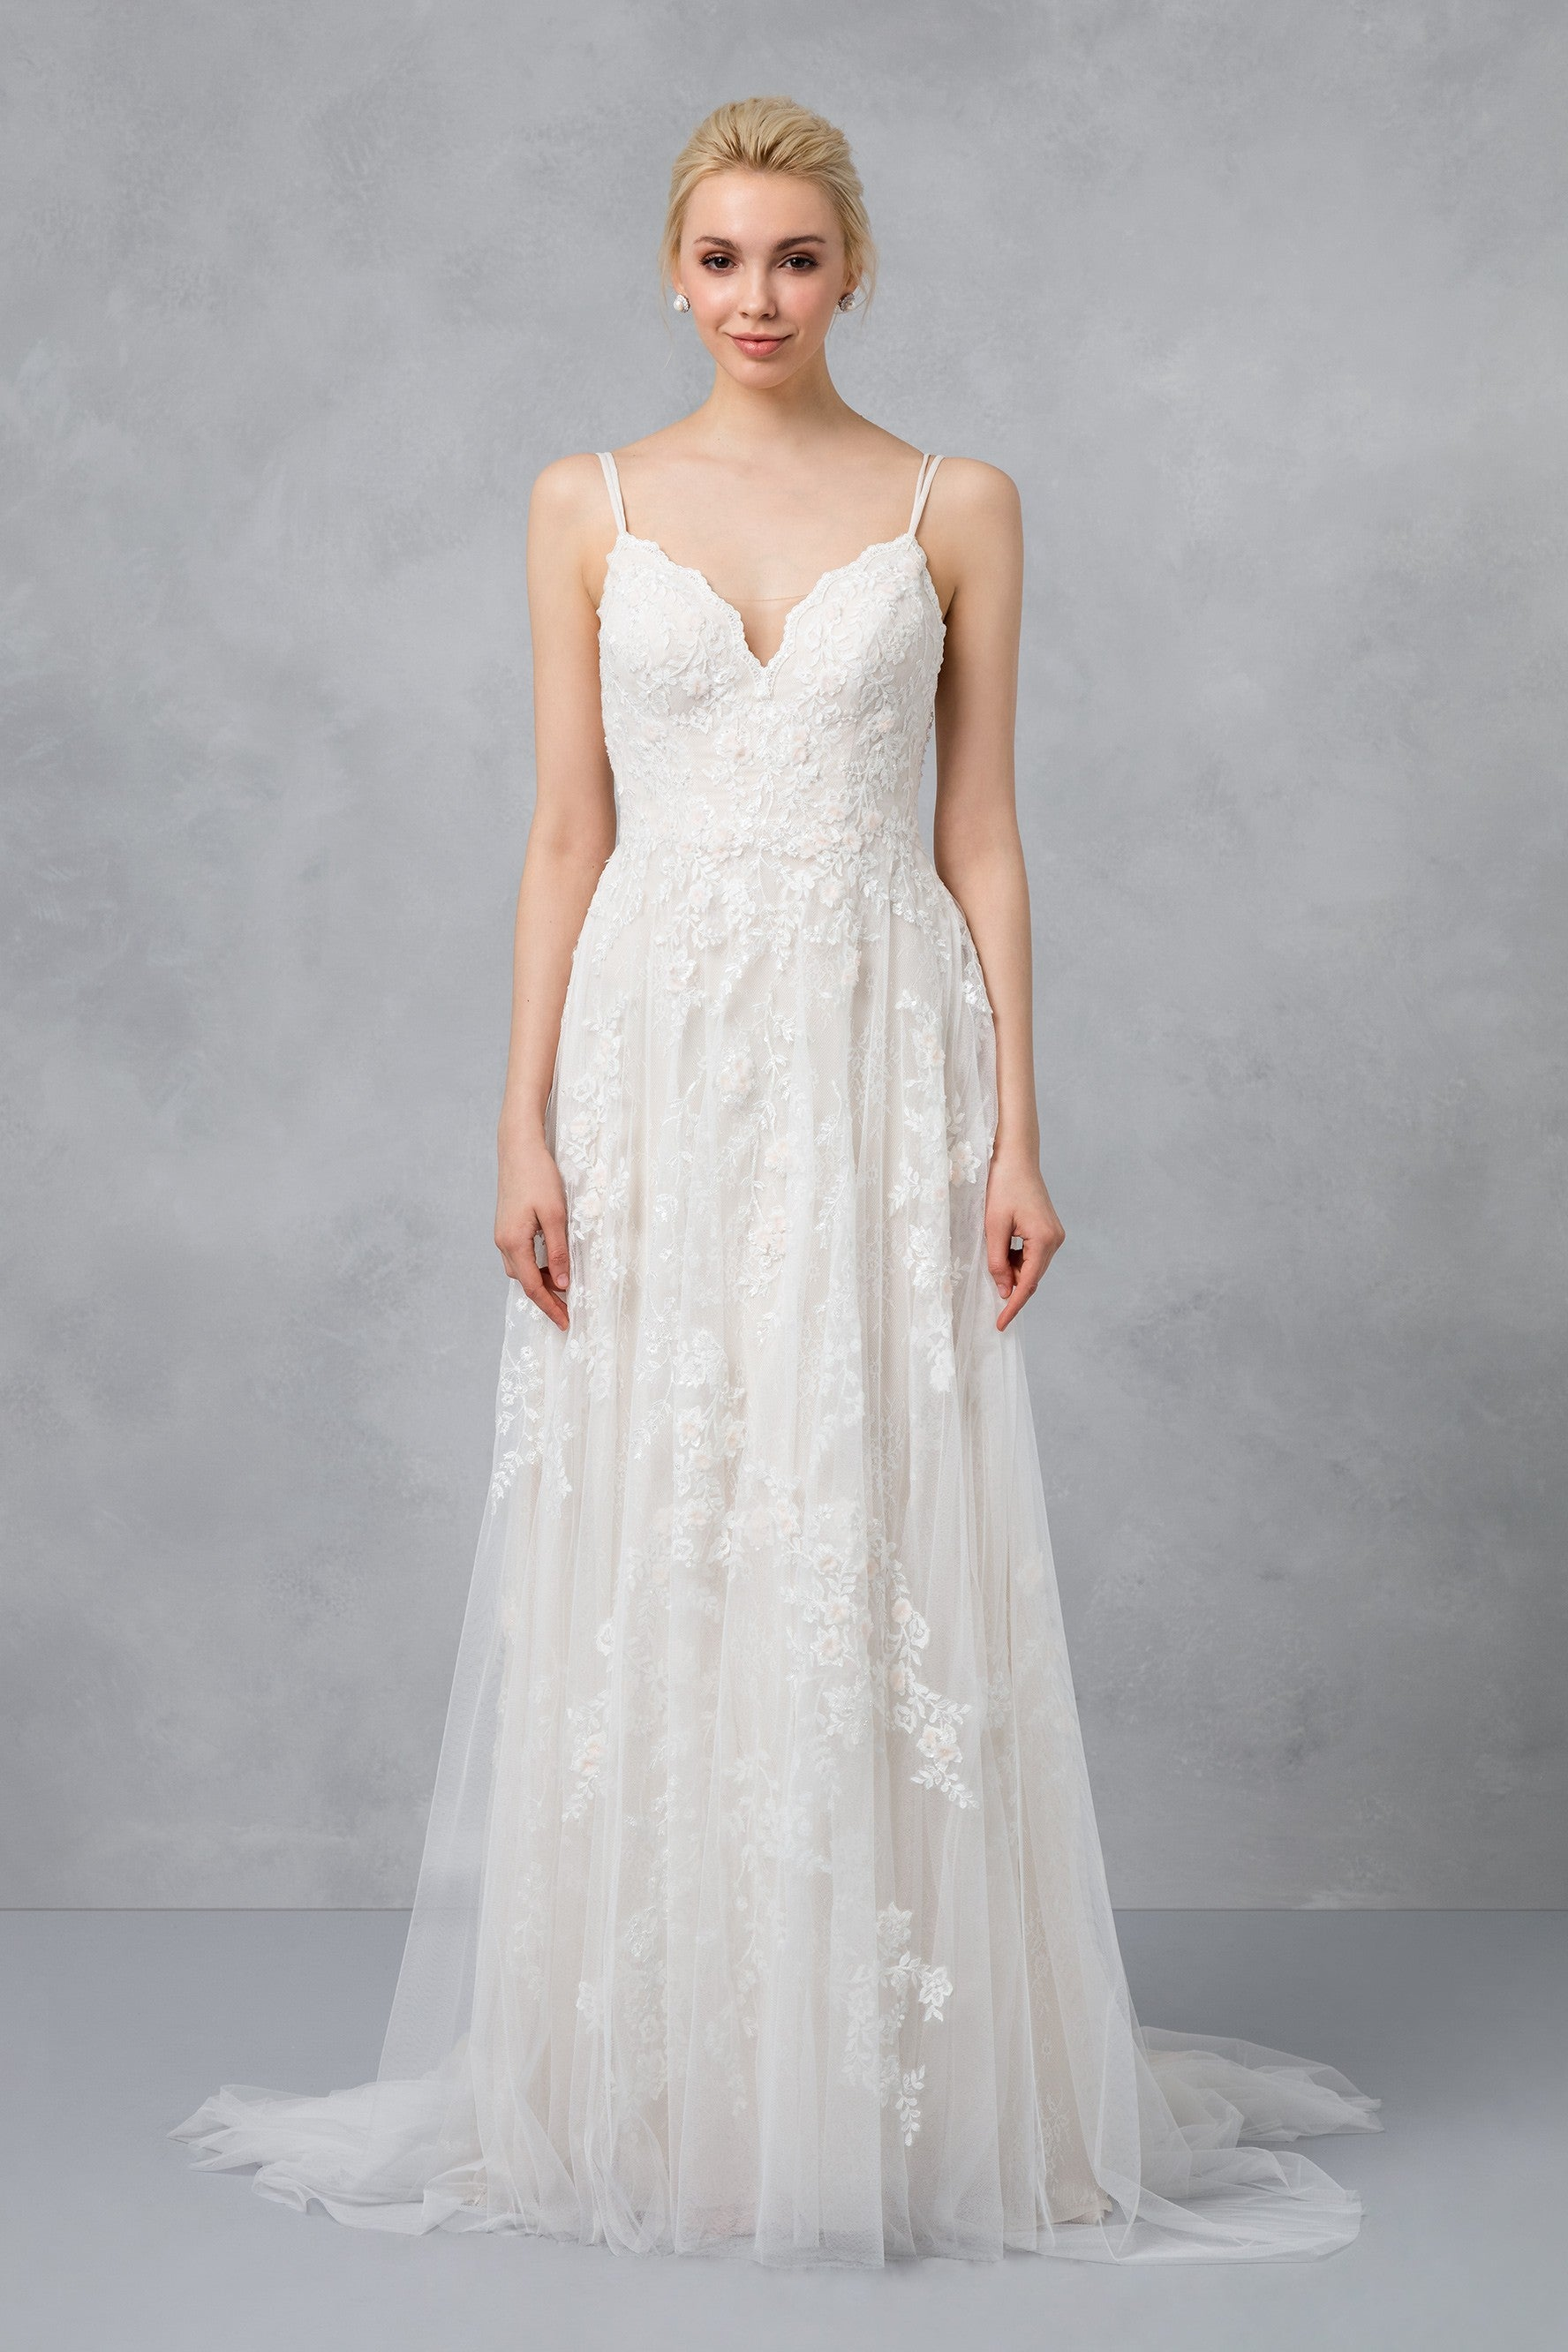 scalloped aline wedding dress with double strapsms251177